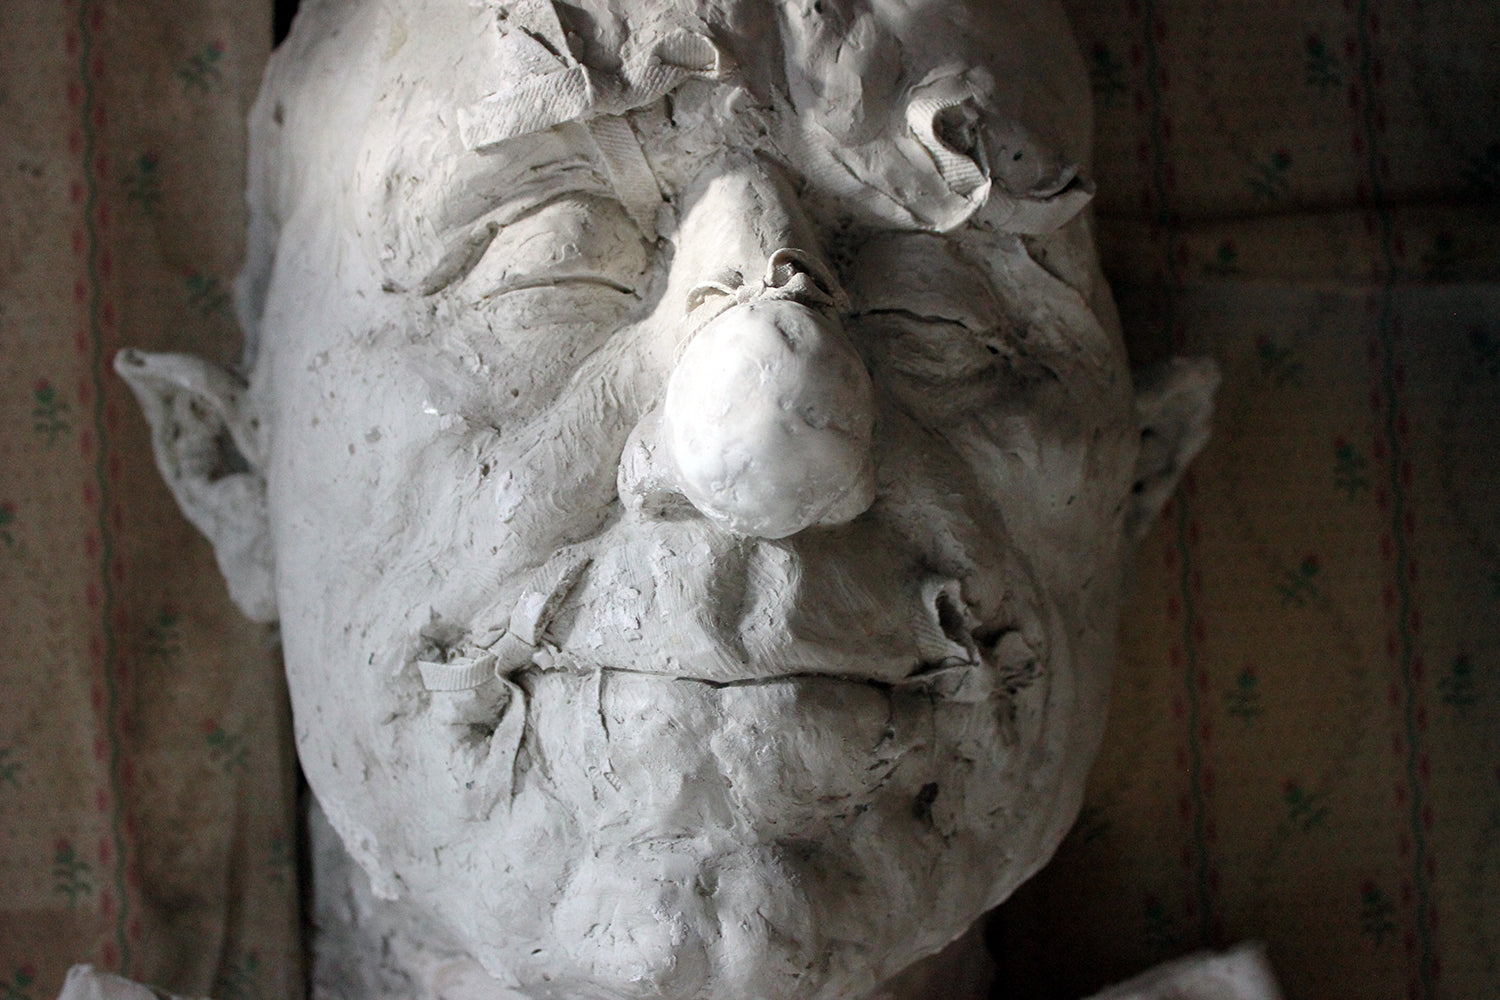 Beth Carter; 'Big Old Clown Mask'; Jesmonite & Plaster; Unique